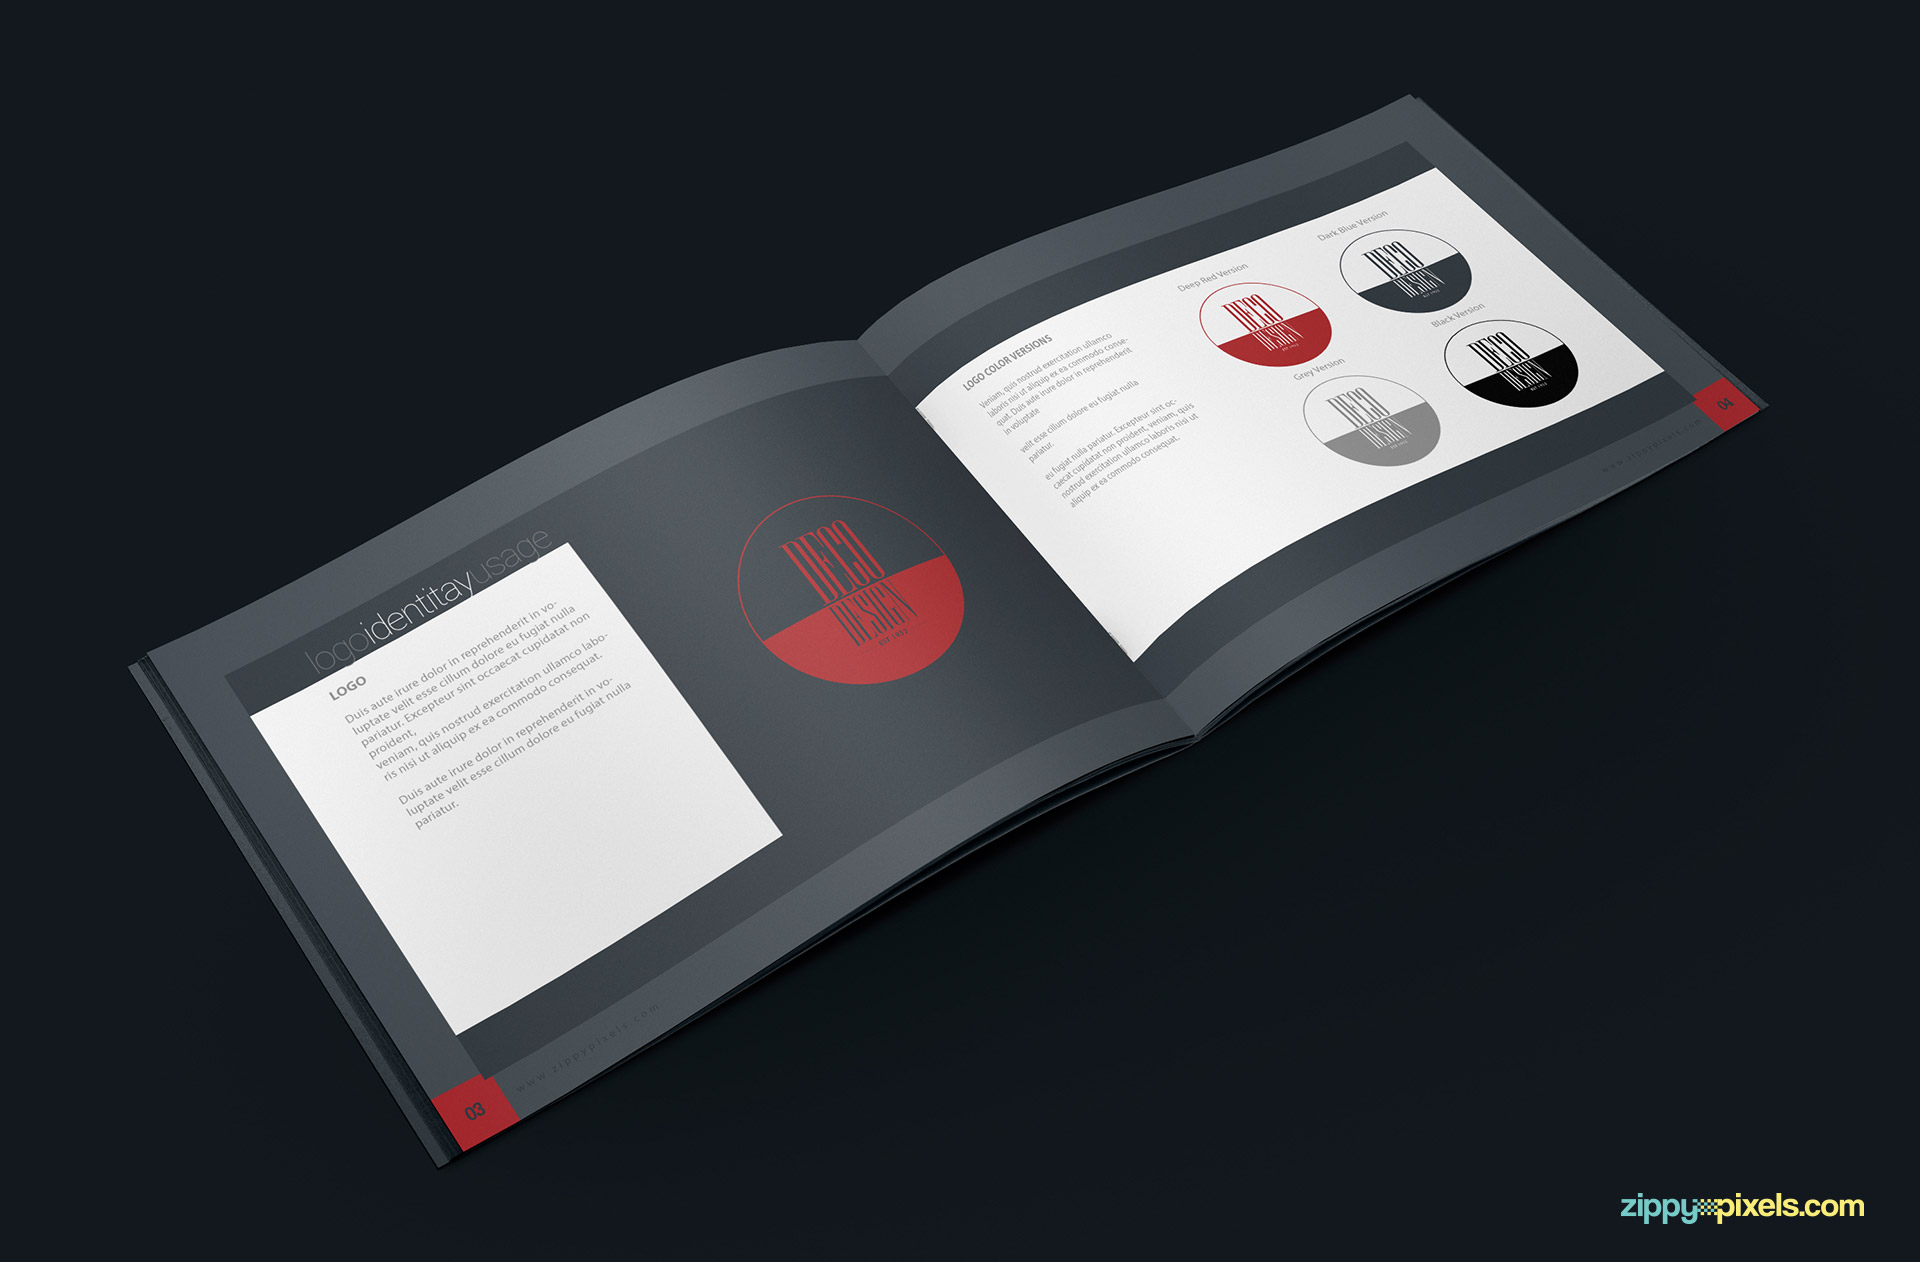 05-brand-book-1-logo-identity-usage